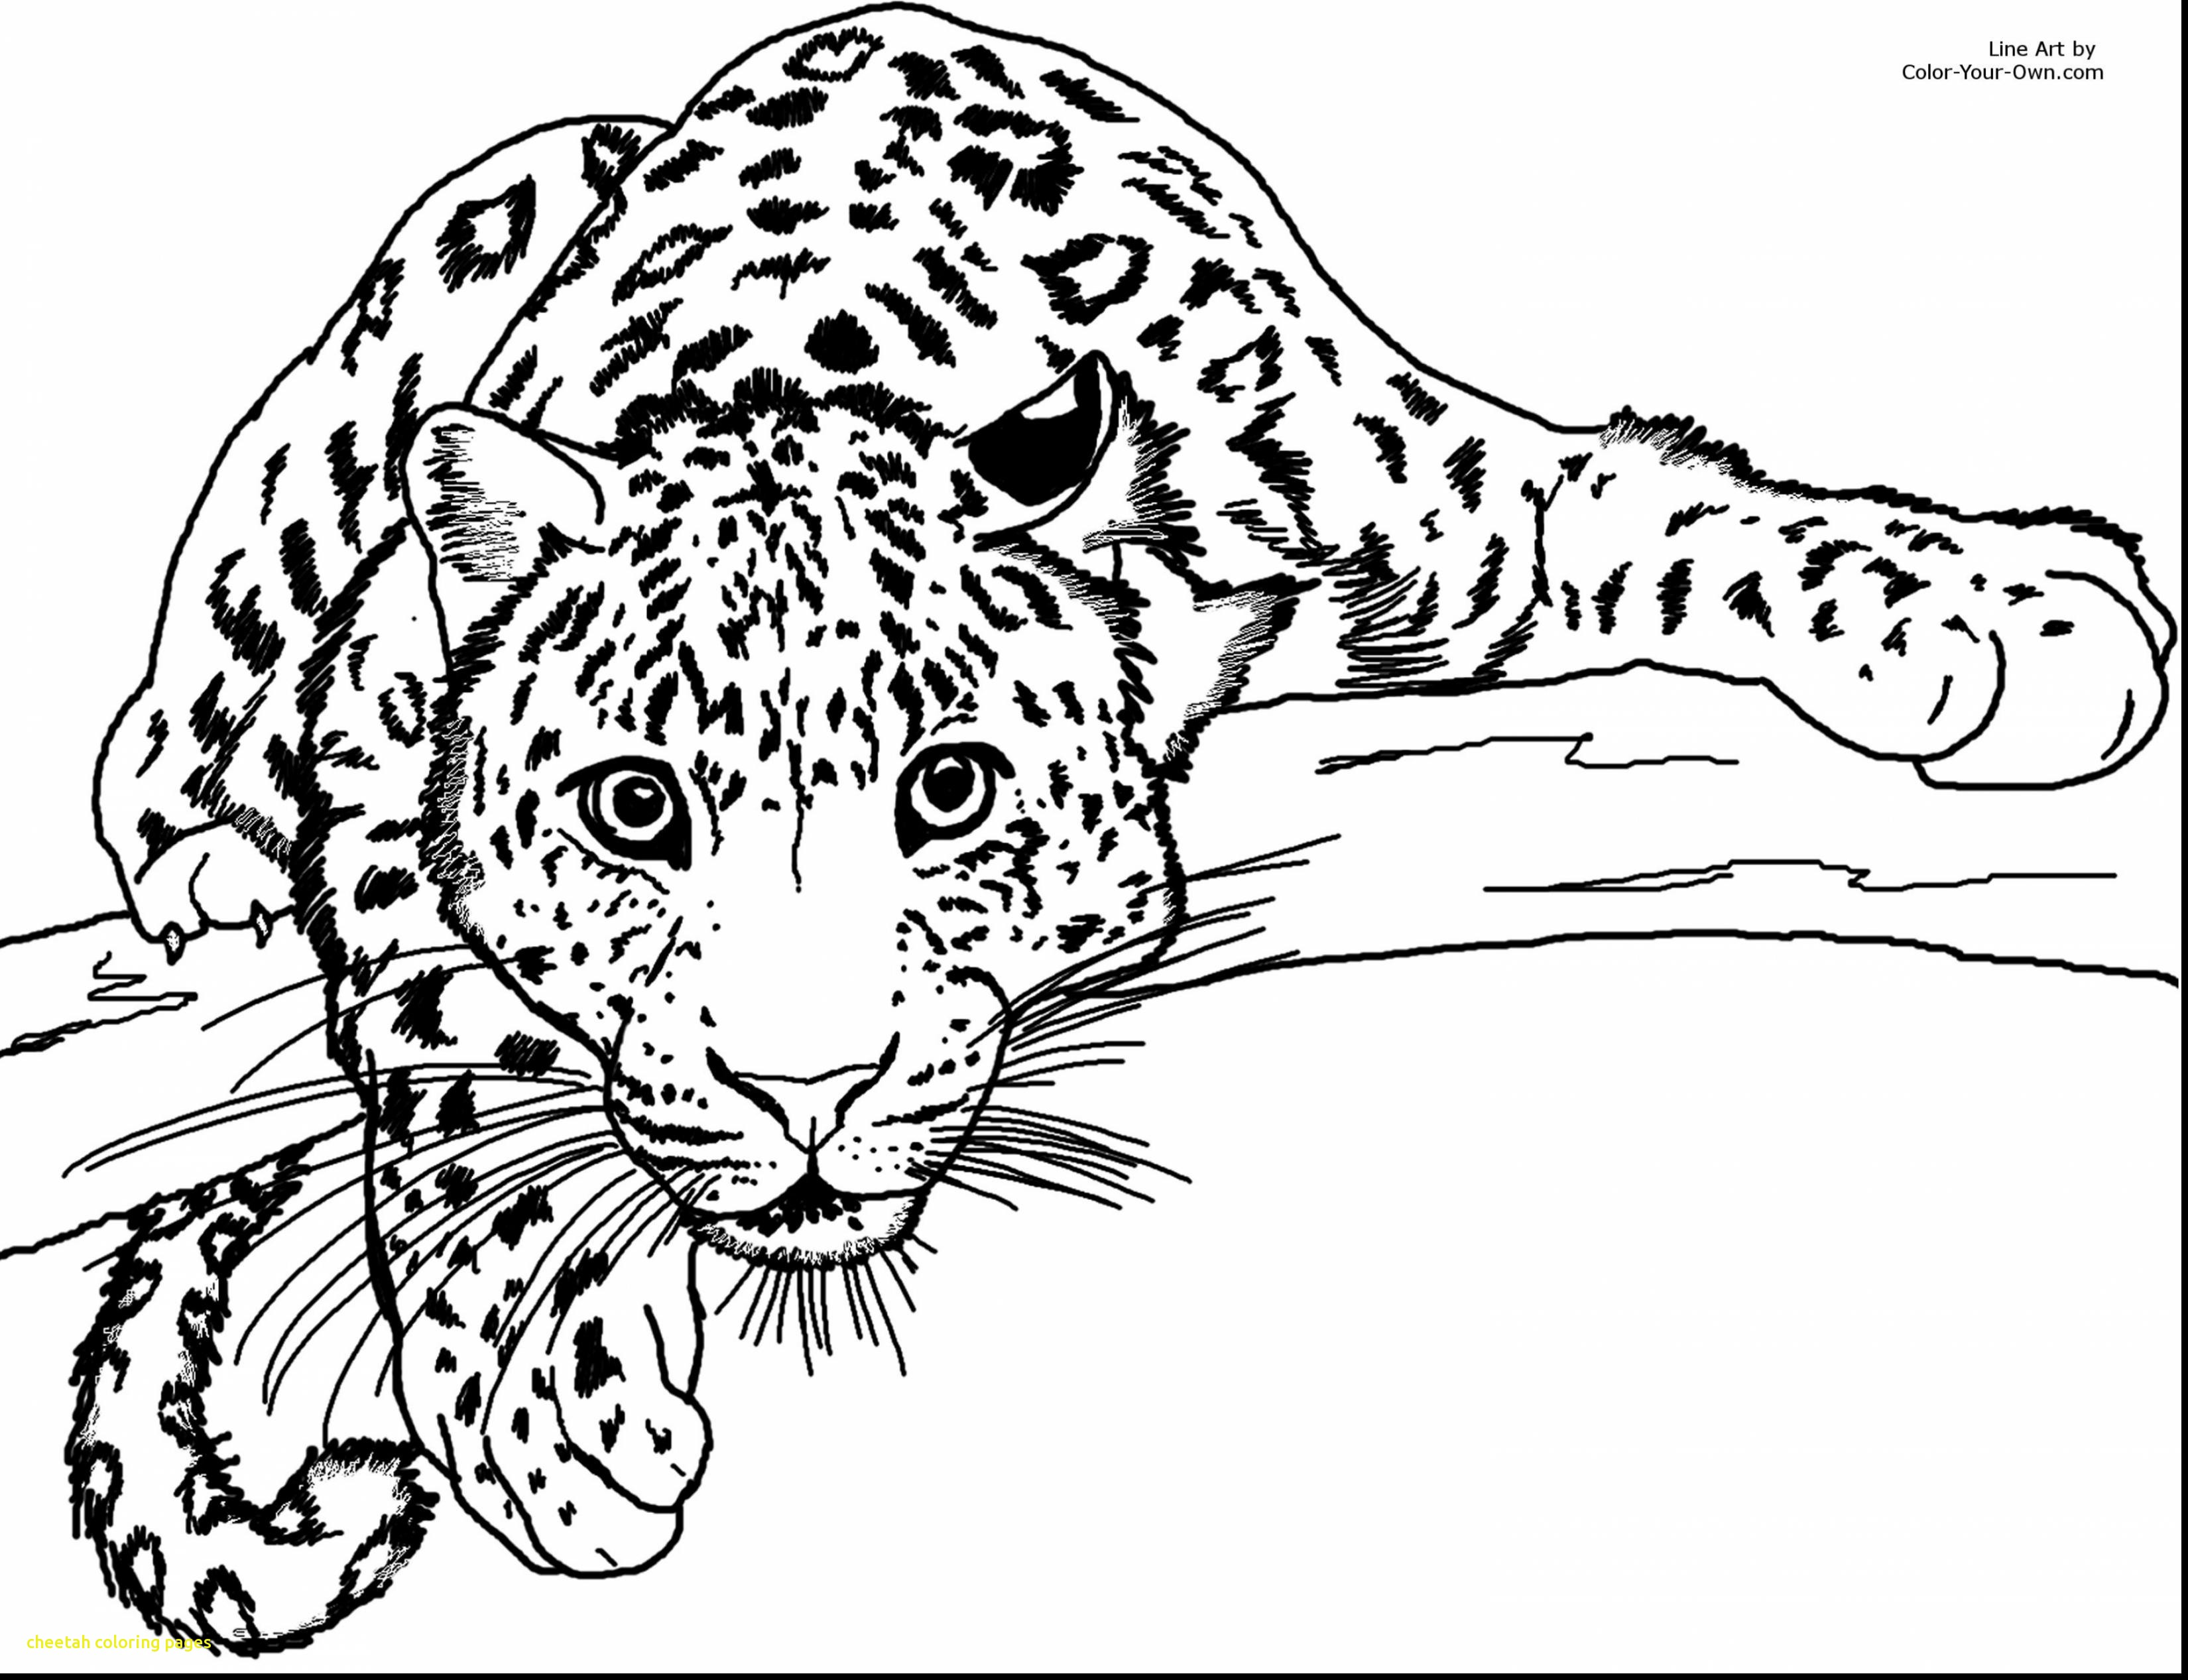 3300x2534 Cheetah Coloring Pages With Drawn Cheetah Coloring Page Pencil